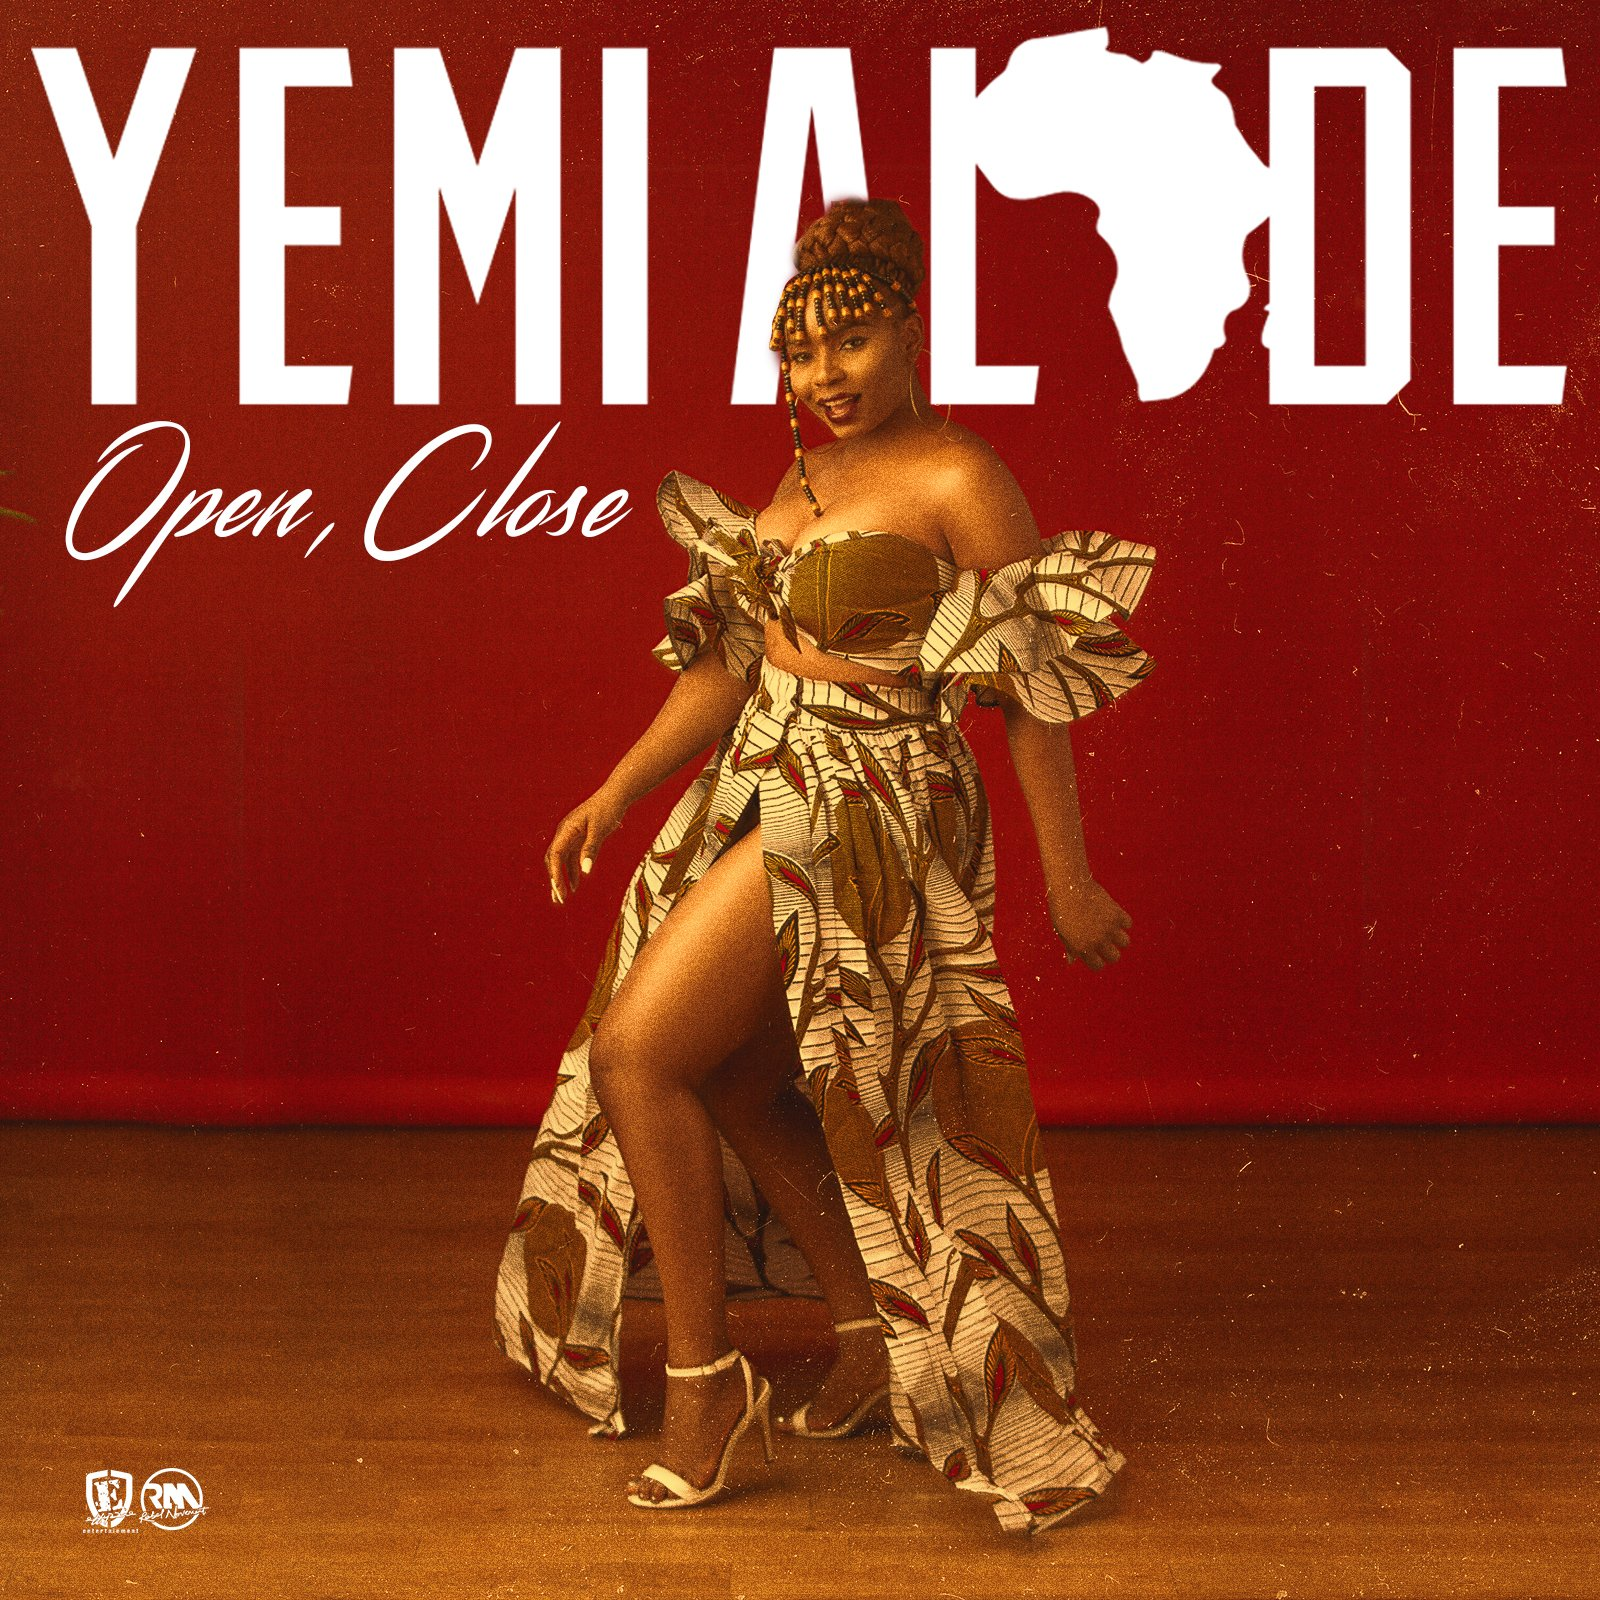 """Yemi Alade Open Close OkayNG - Yemi Alade Releases New Song """"Open, Close"""" [Listen]"""